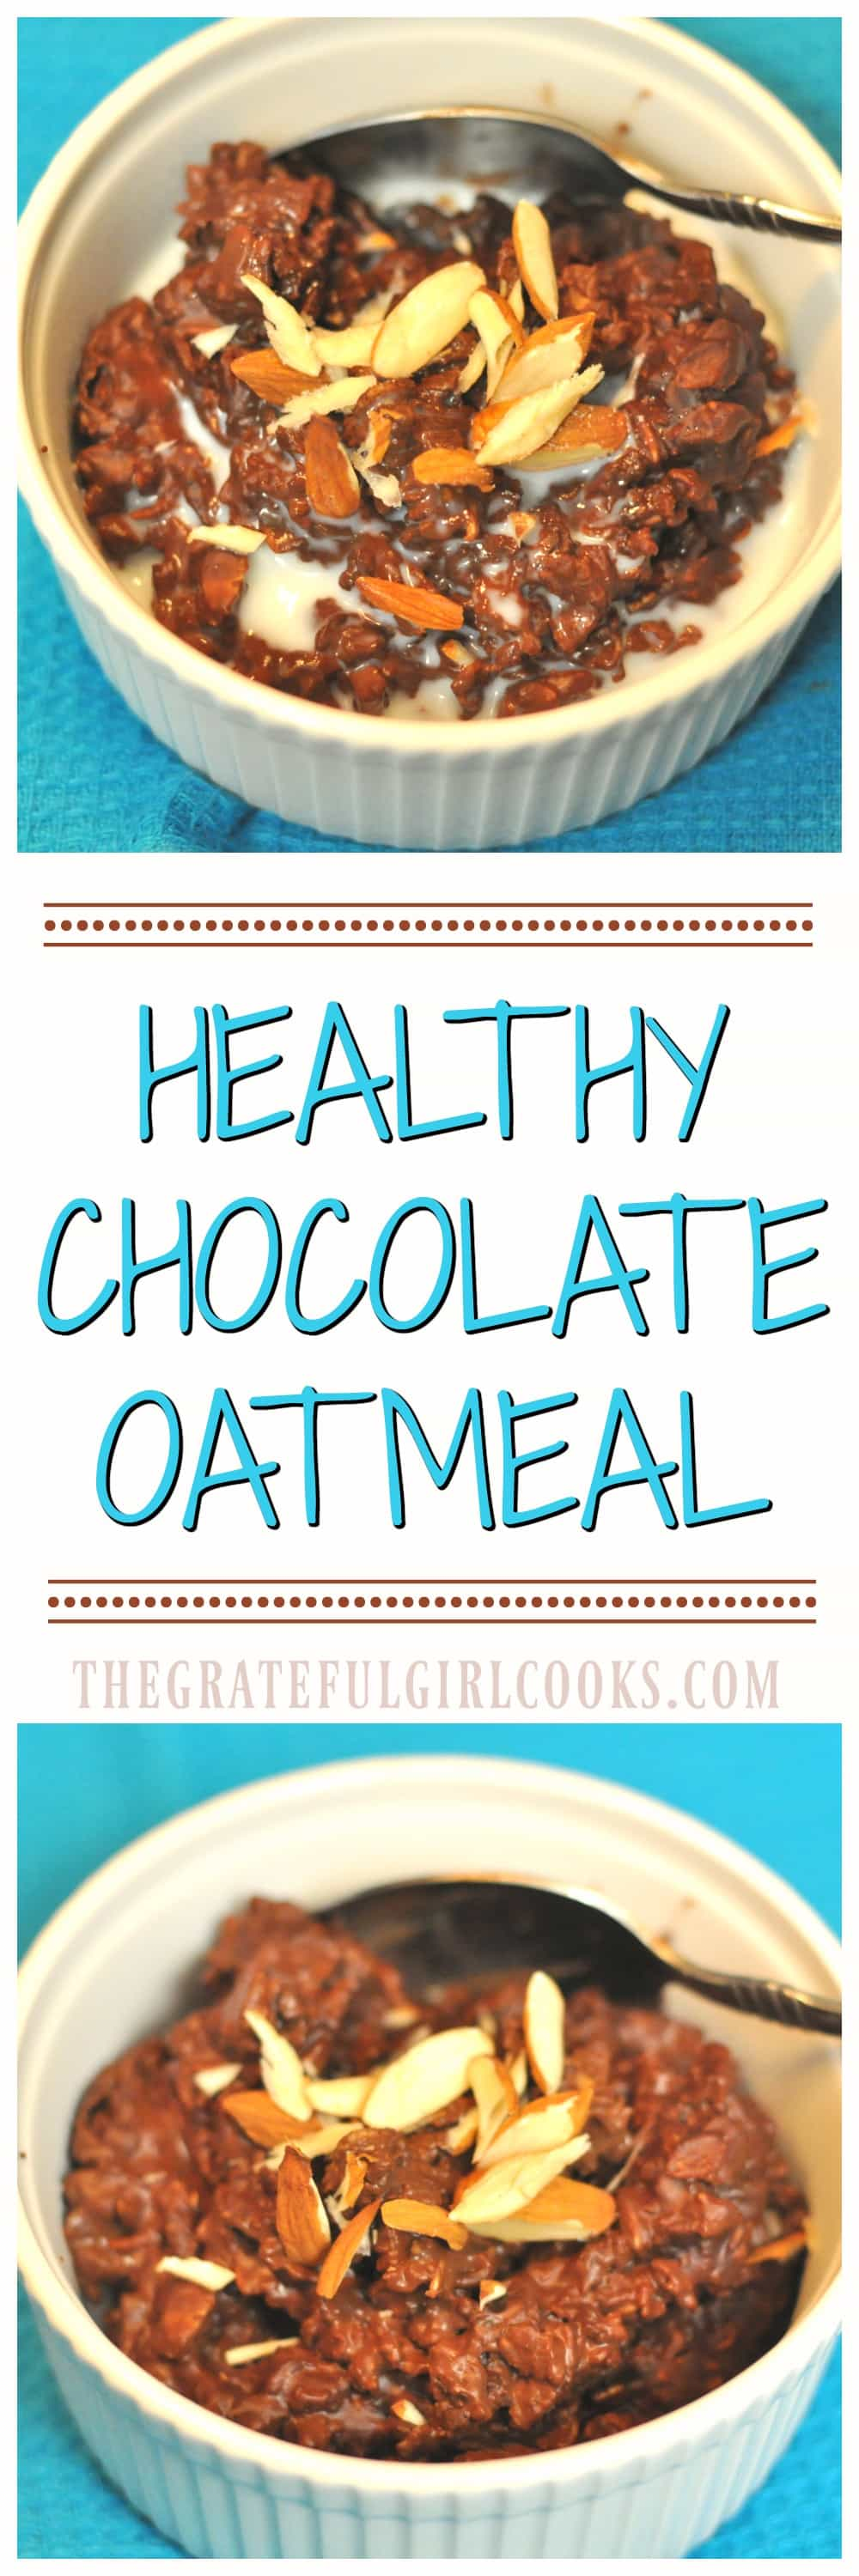 "Healthy Chocolate Oatmeal / The Grateful Girl Cooks! Microwaveable, delicious and healthy, this chocolate oatmeal is a delightful ""morning bowl of goodness""."